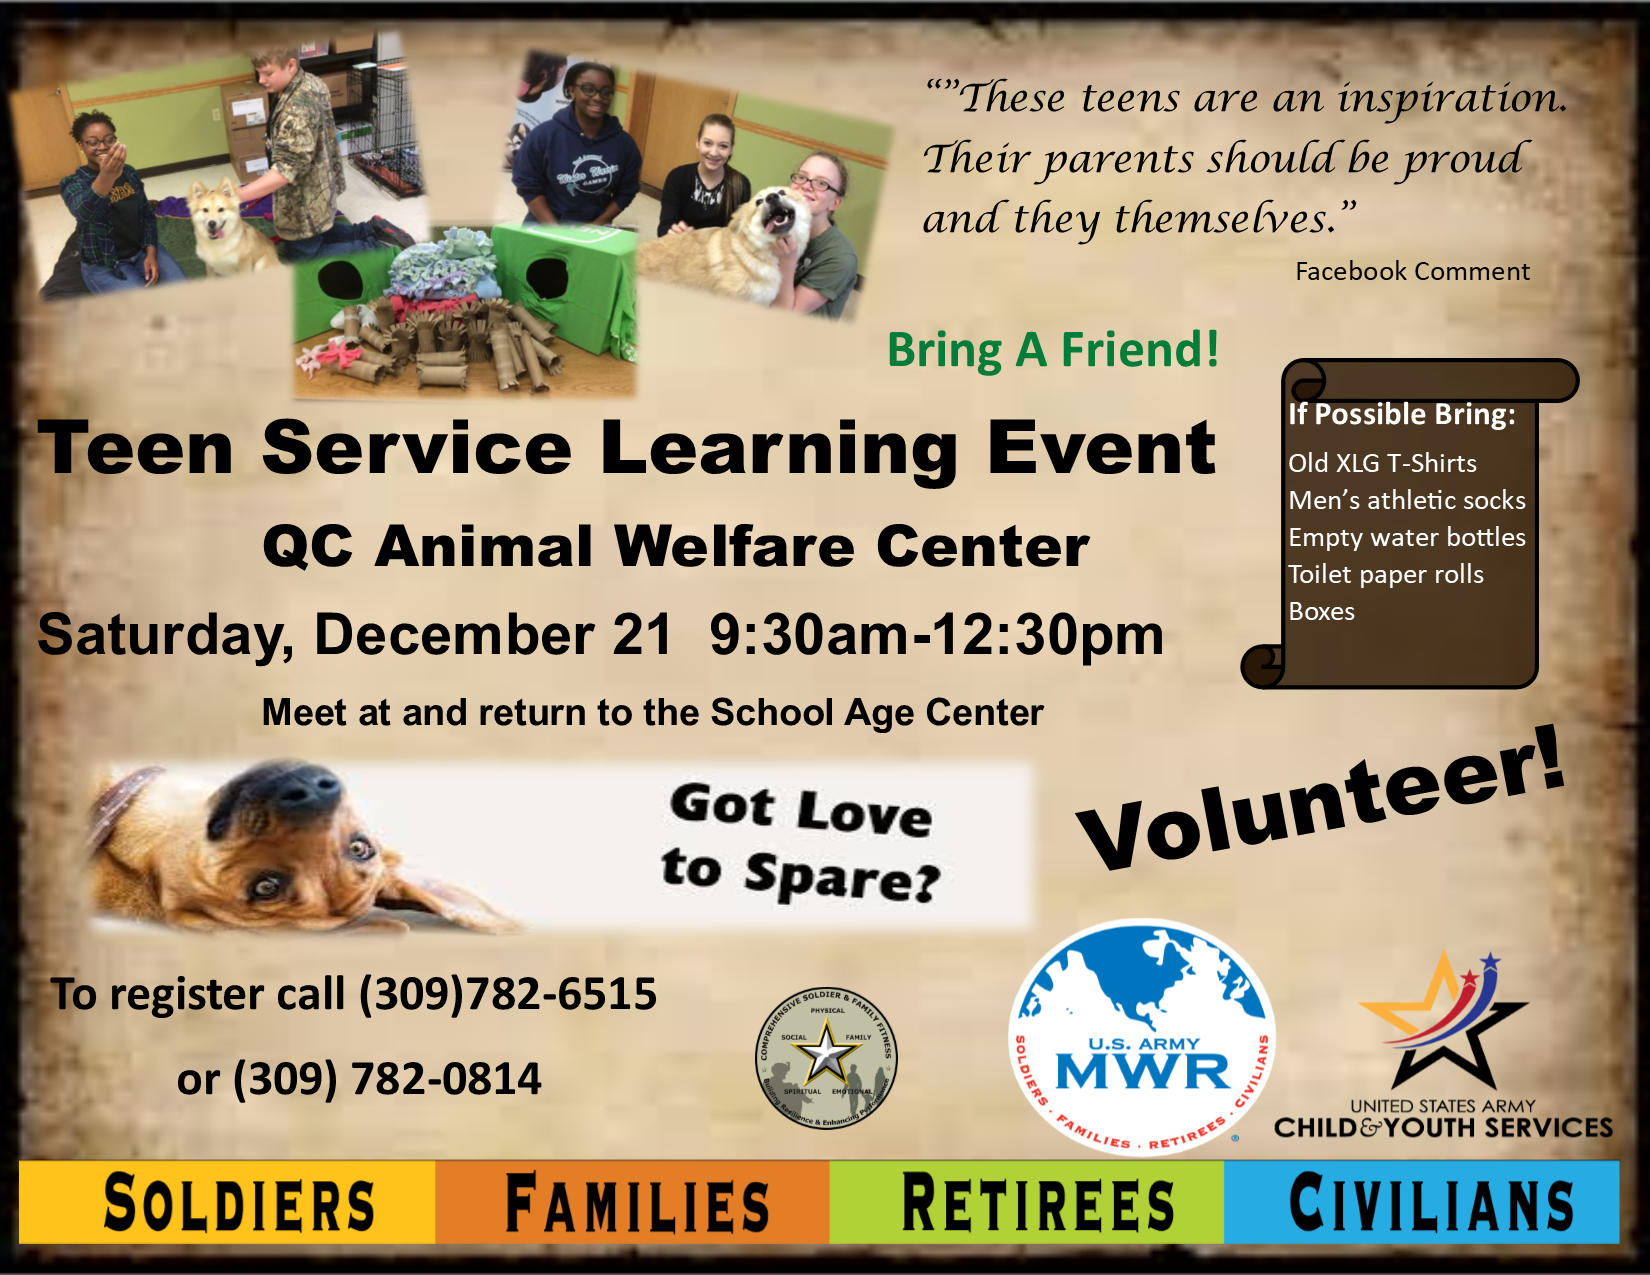 Teen Service Learning Event